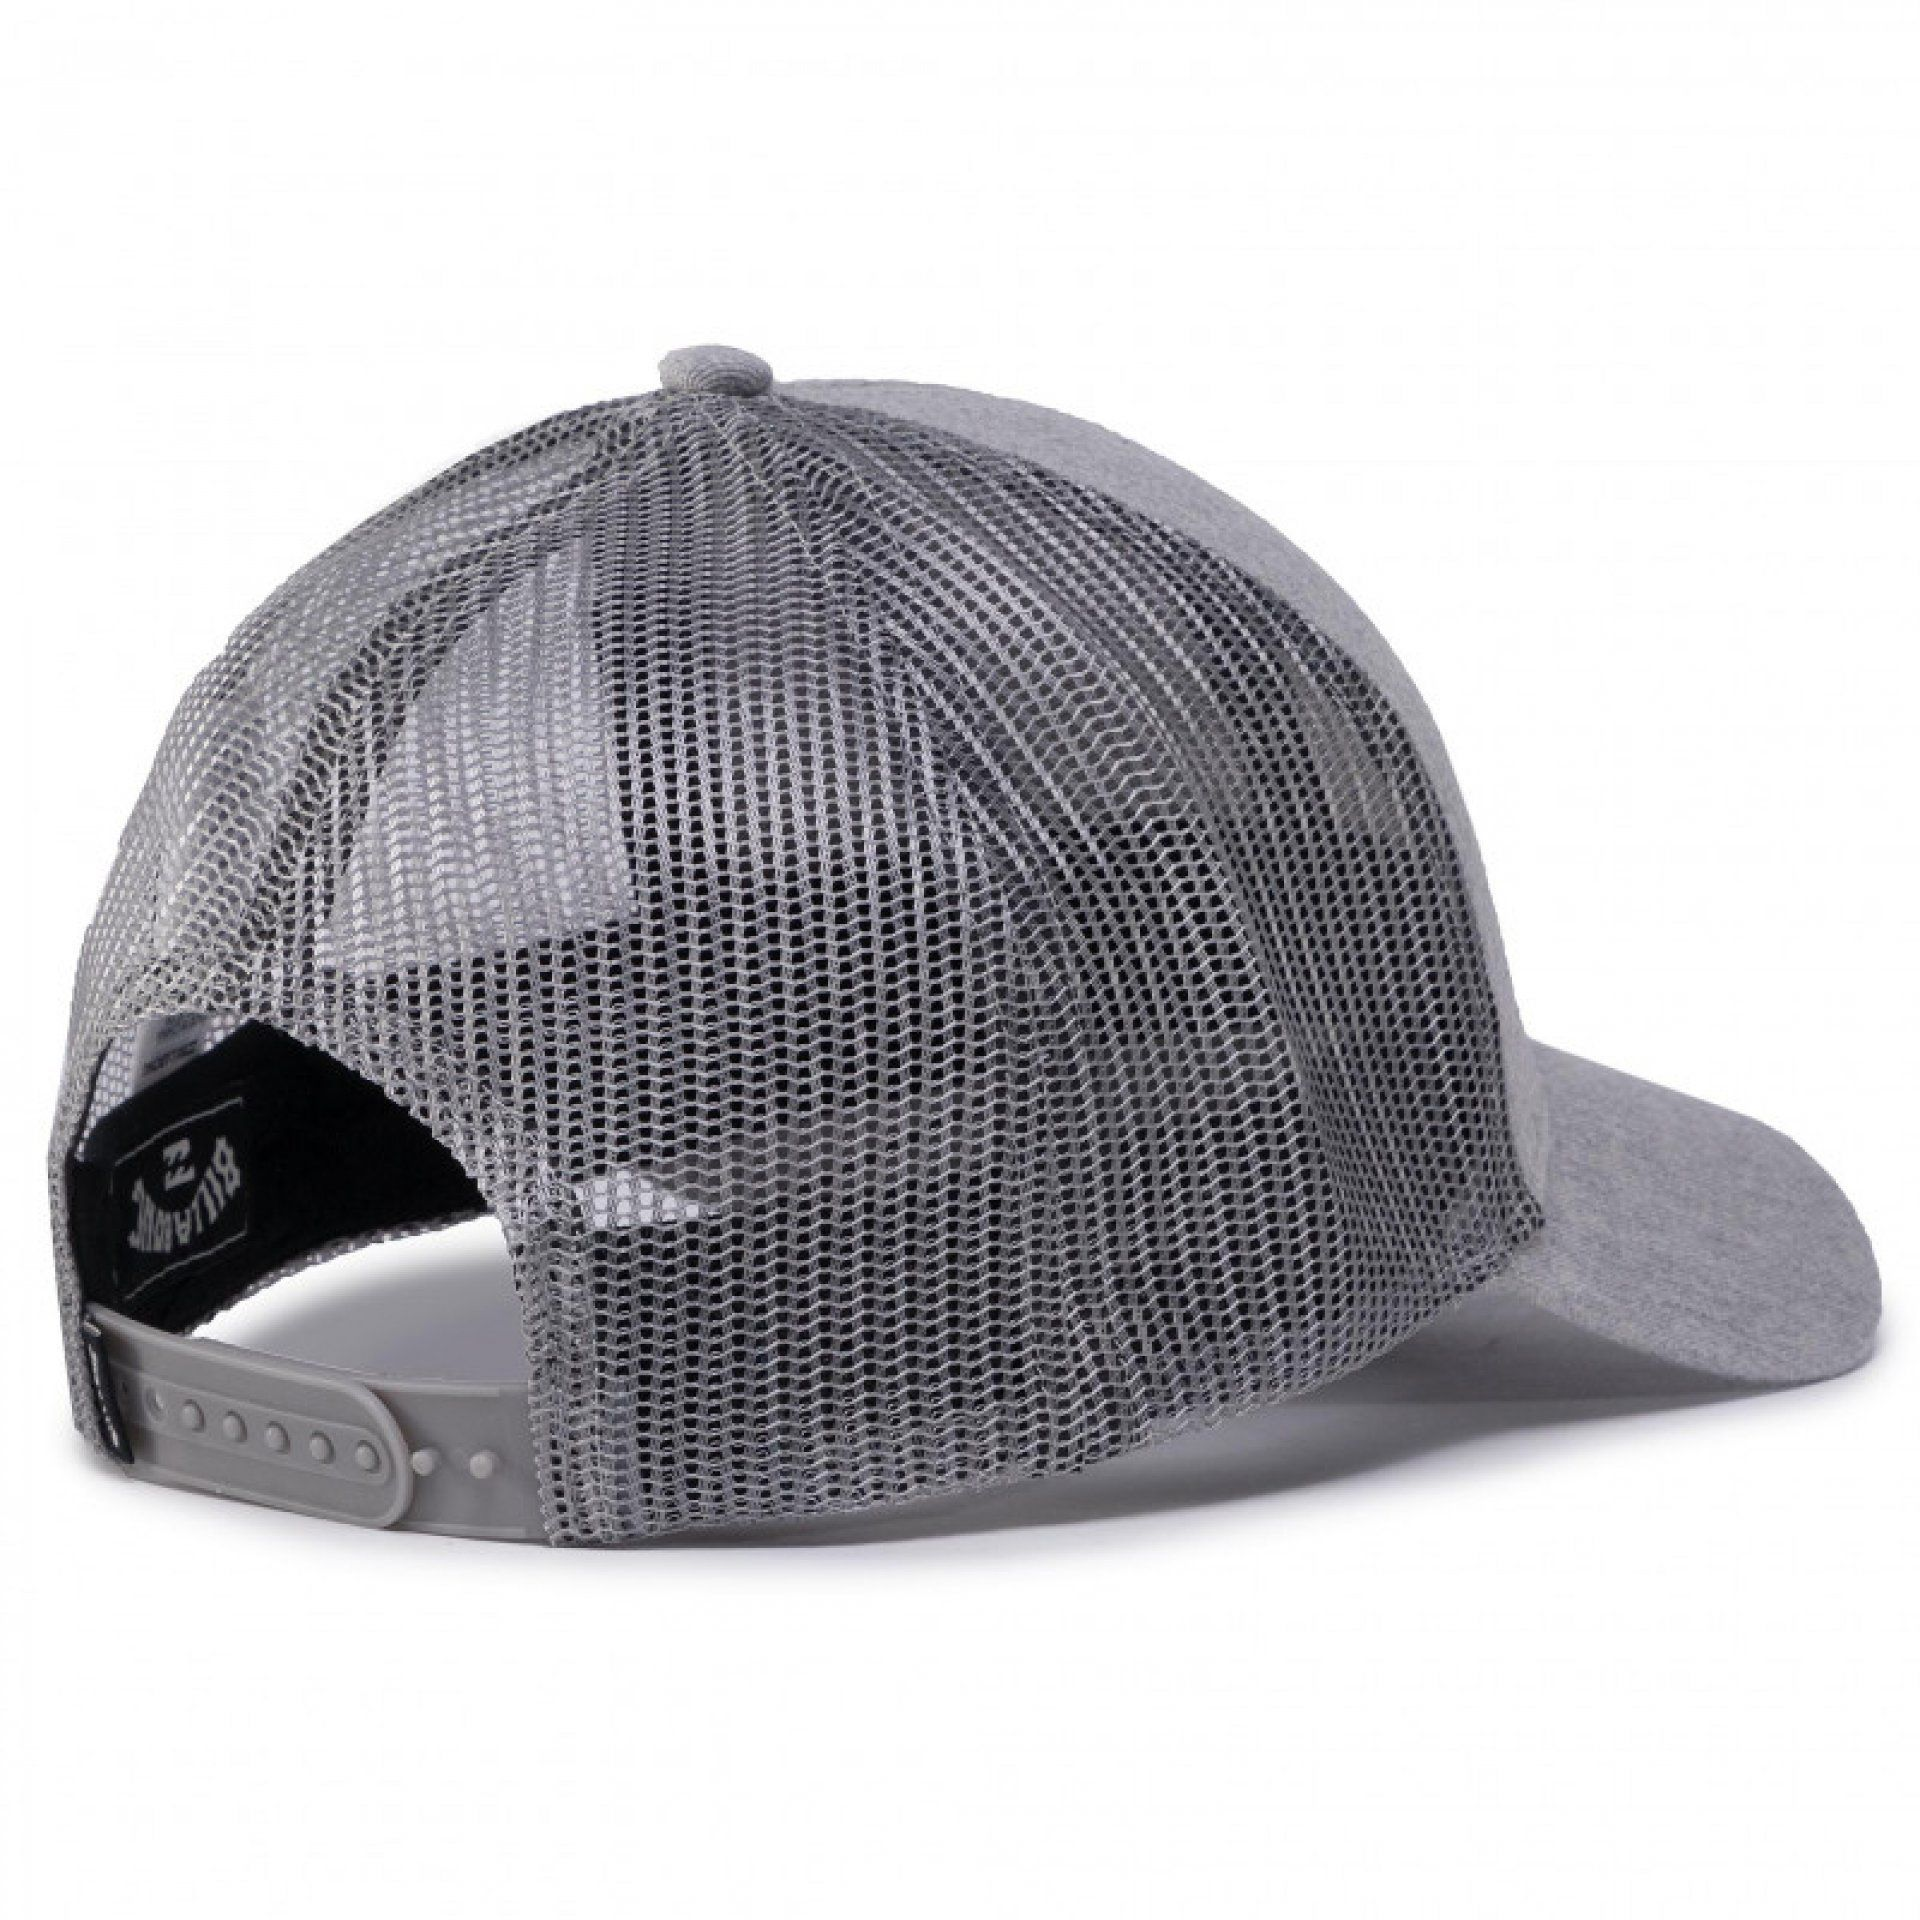 CZAPKA Z DASZKIEM BILLABONG WALLED TRUCKER 1009 HEATHER GREY TYŁ